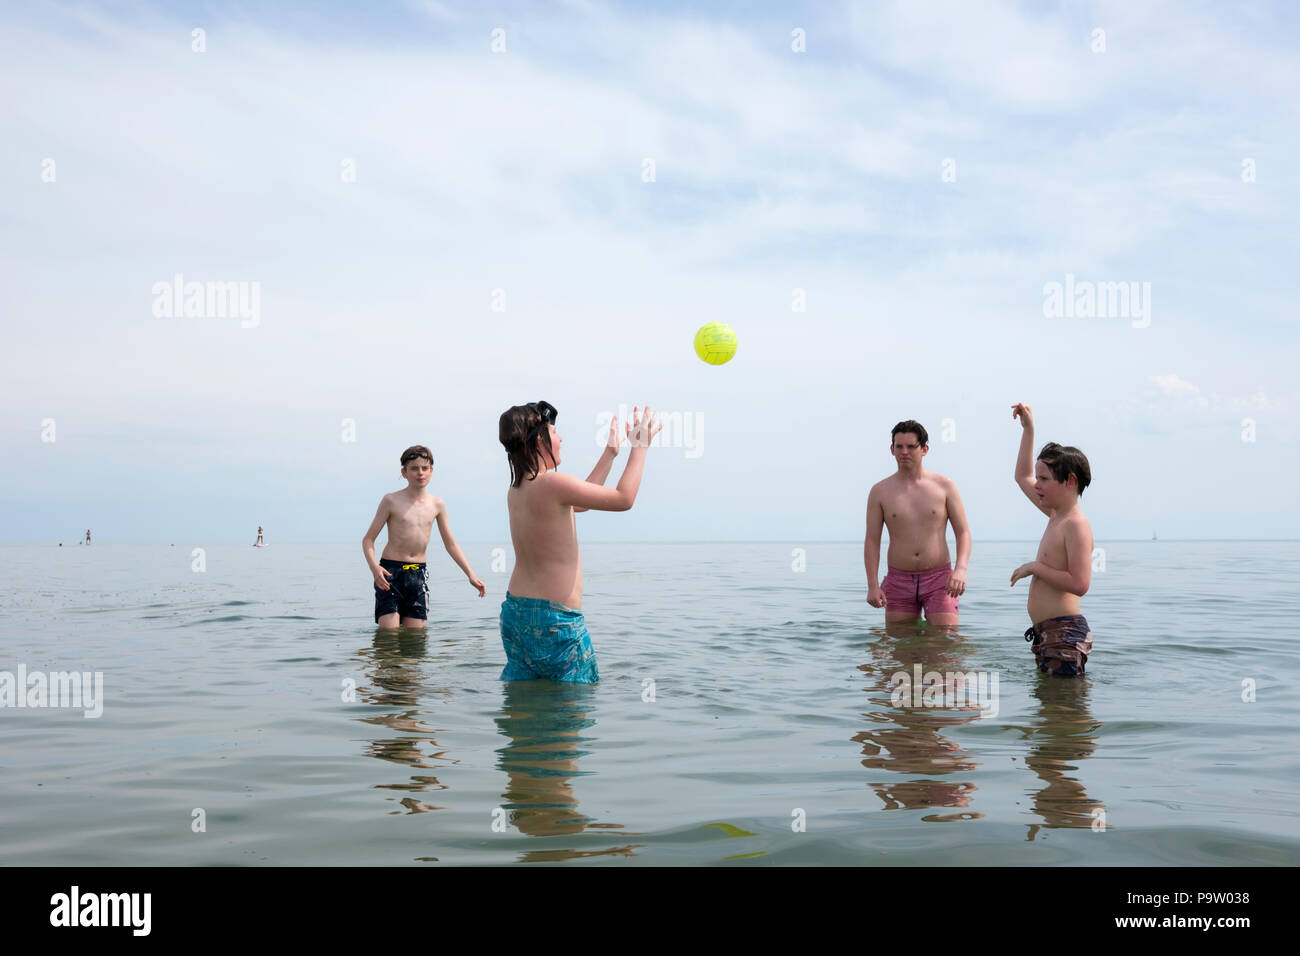 landscape view of four boys in a circle, standing up to their knees in a calm mediterranean sea, playing catch with a yellow ball. - Stock Image